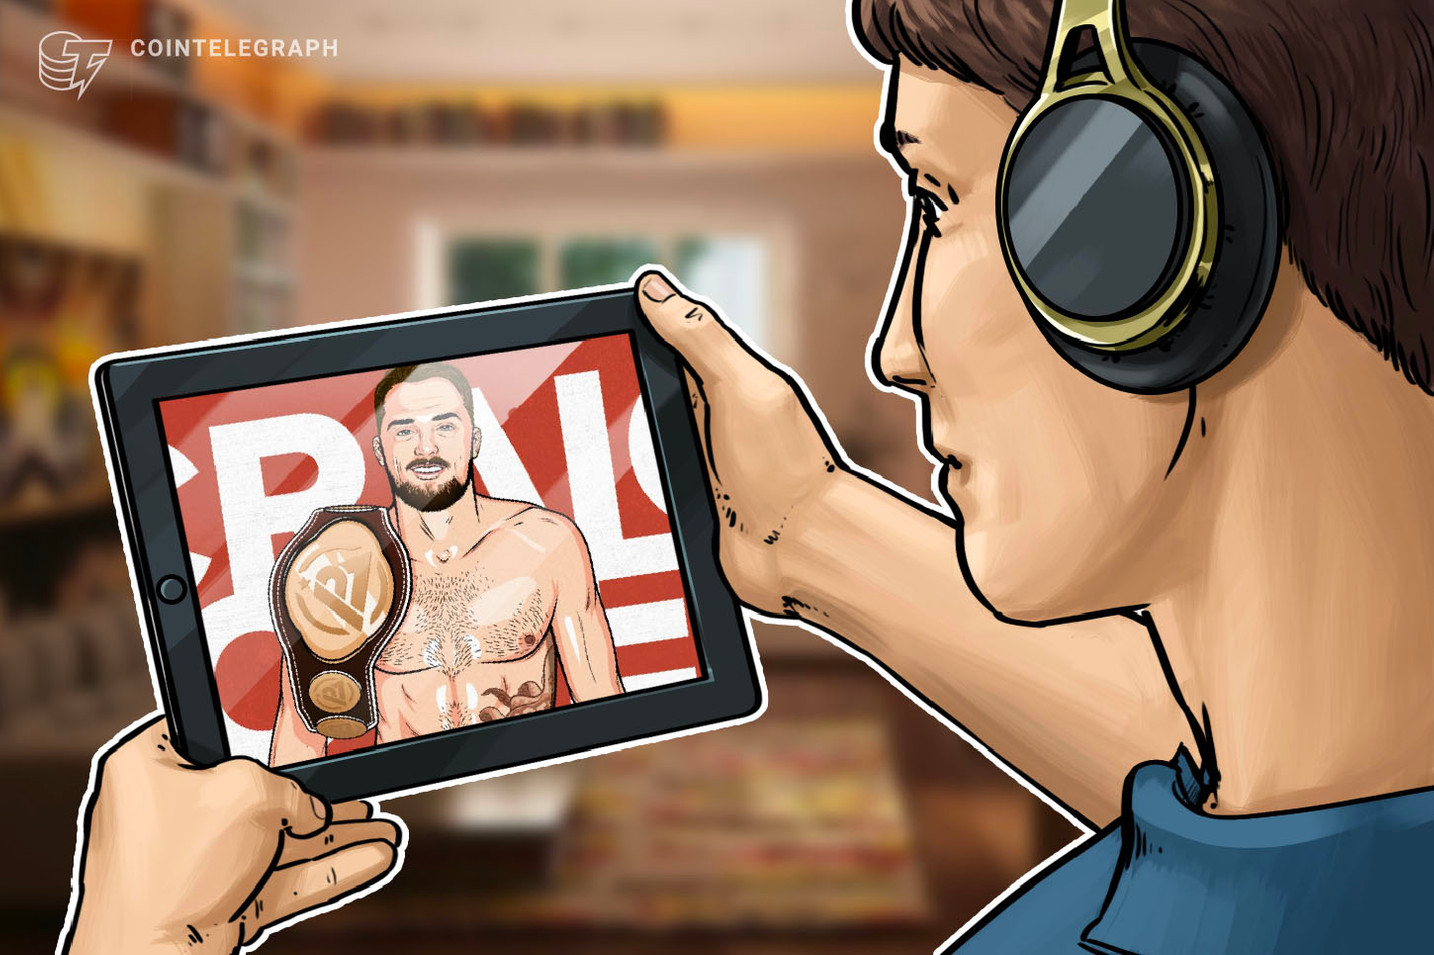 Brazilian Jiu-Jitsu Champion Says He Lost Bitcoin Bought in 2015